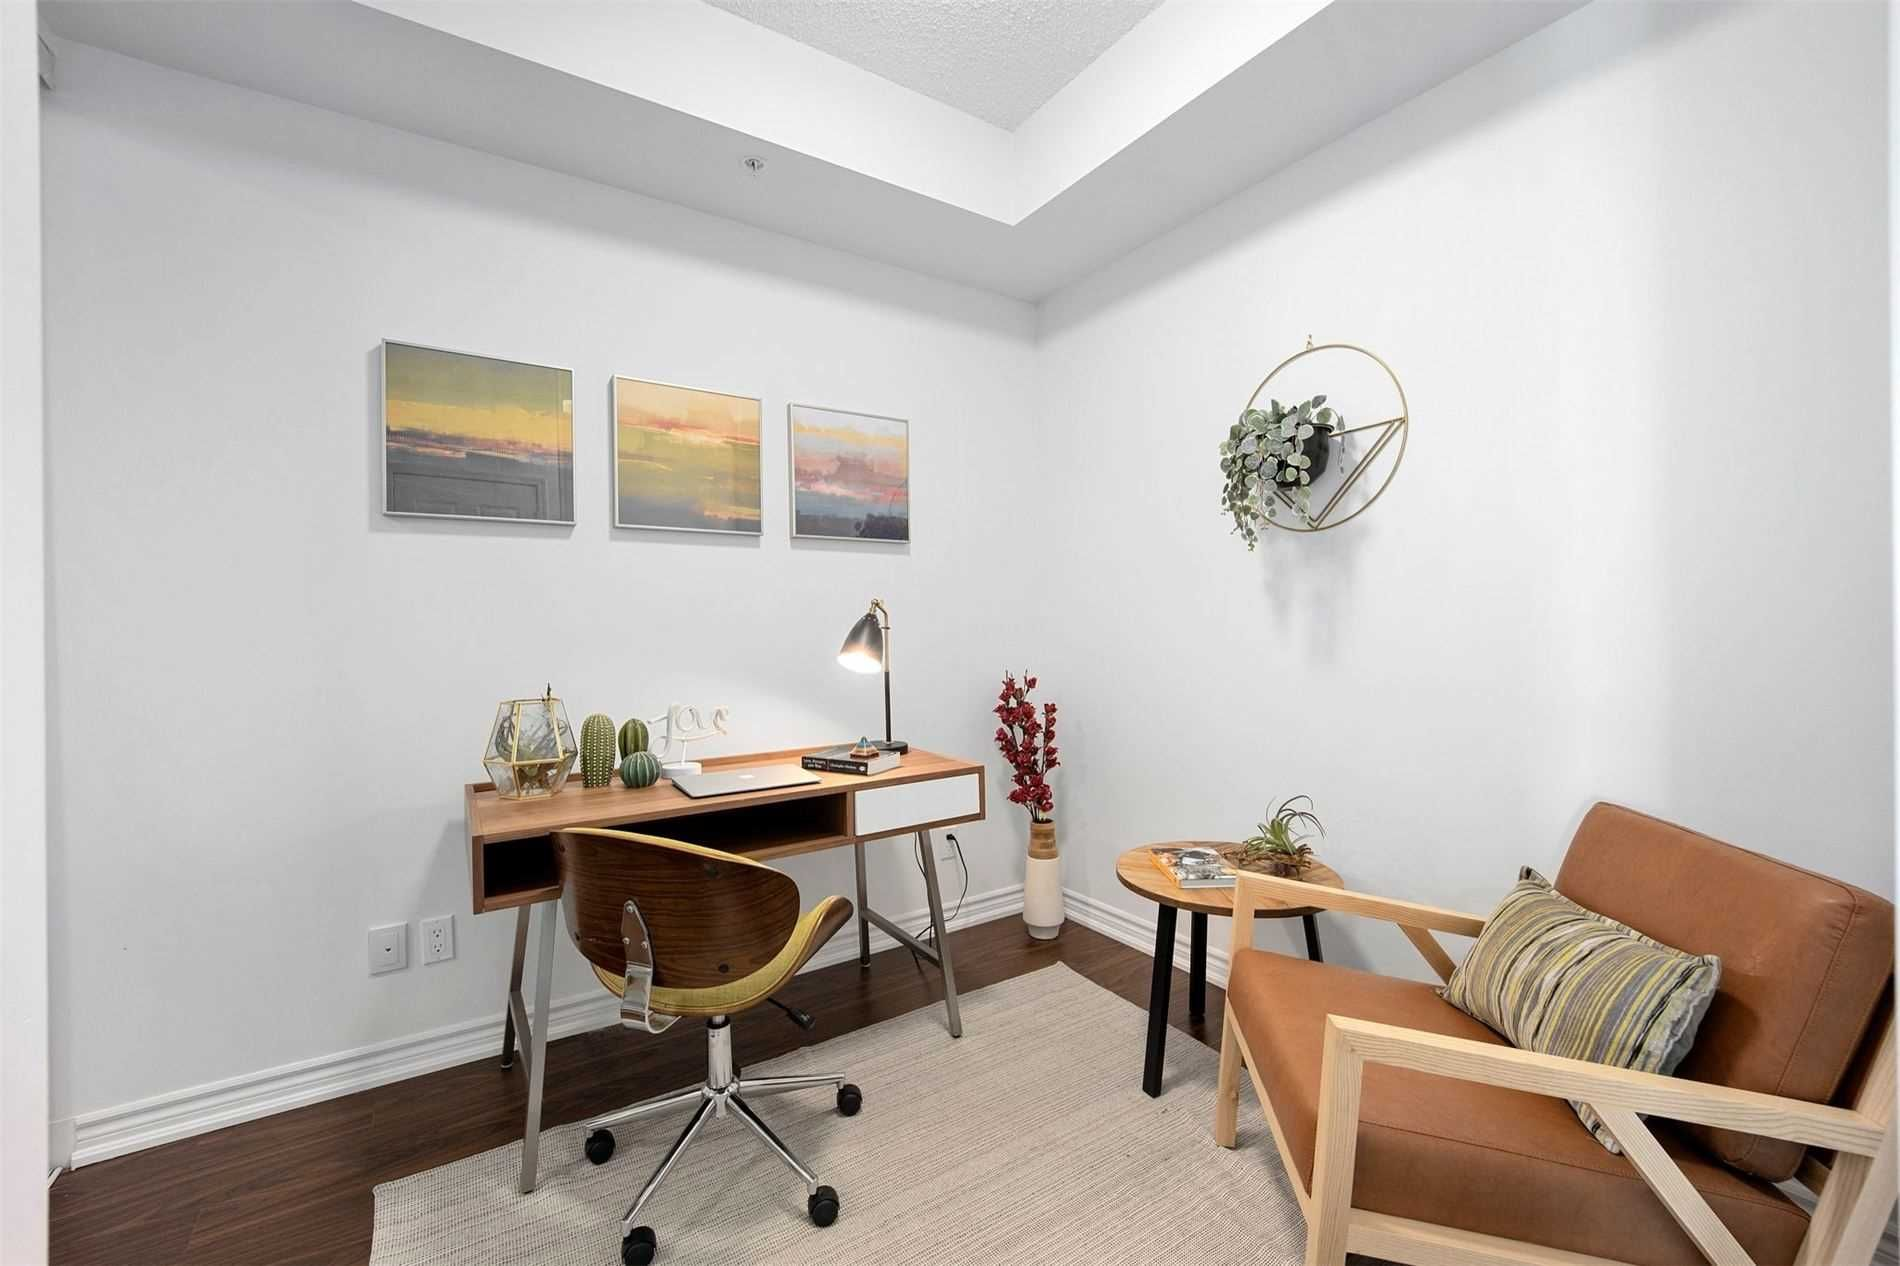 15 James Finlay Way, unit 1003 for sale in Toronto - image #2